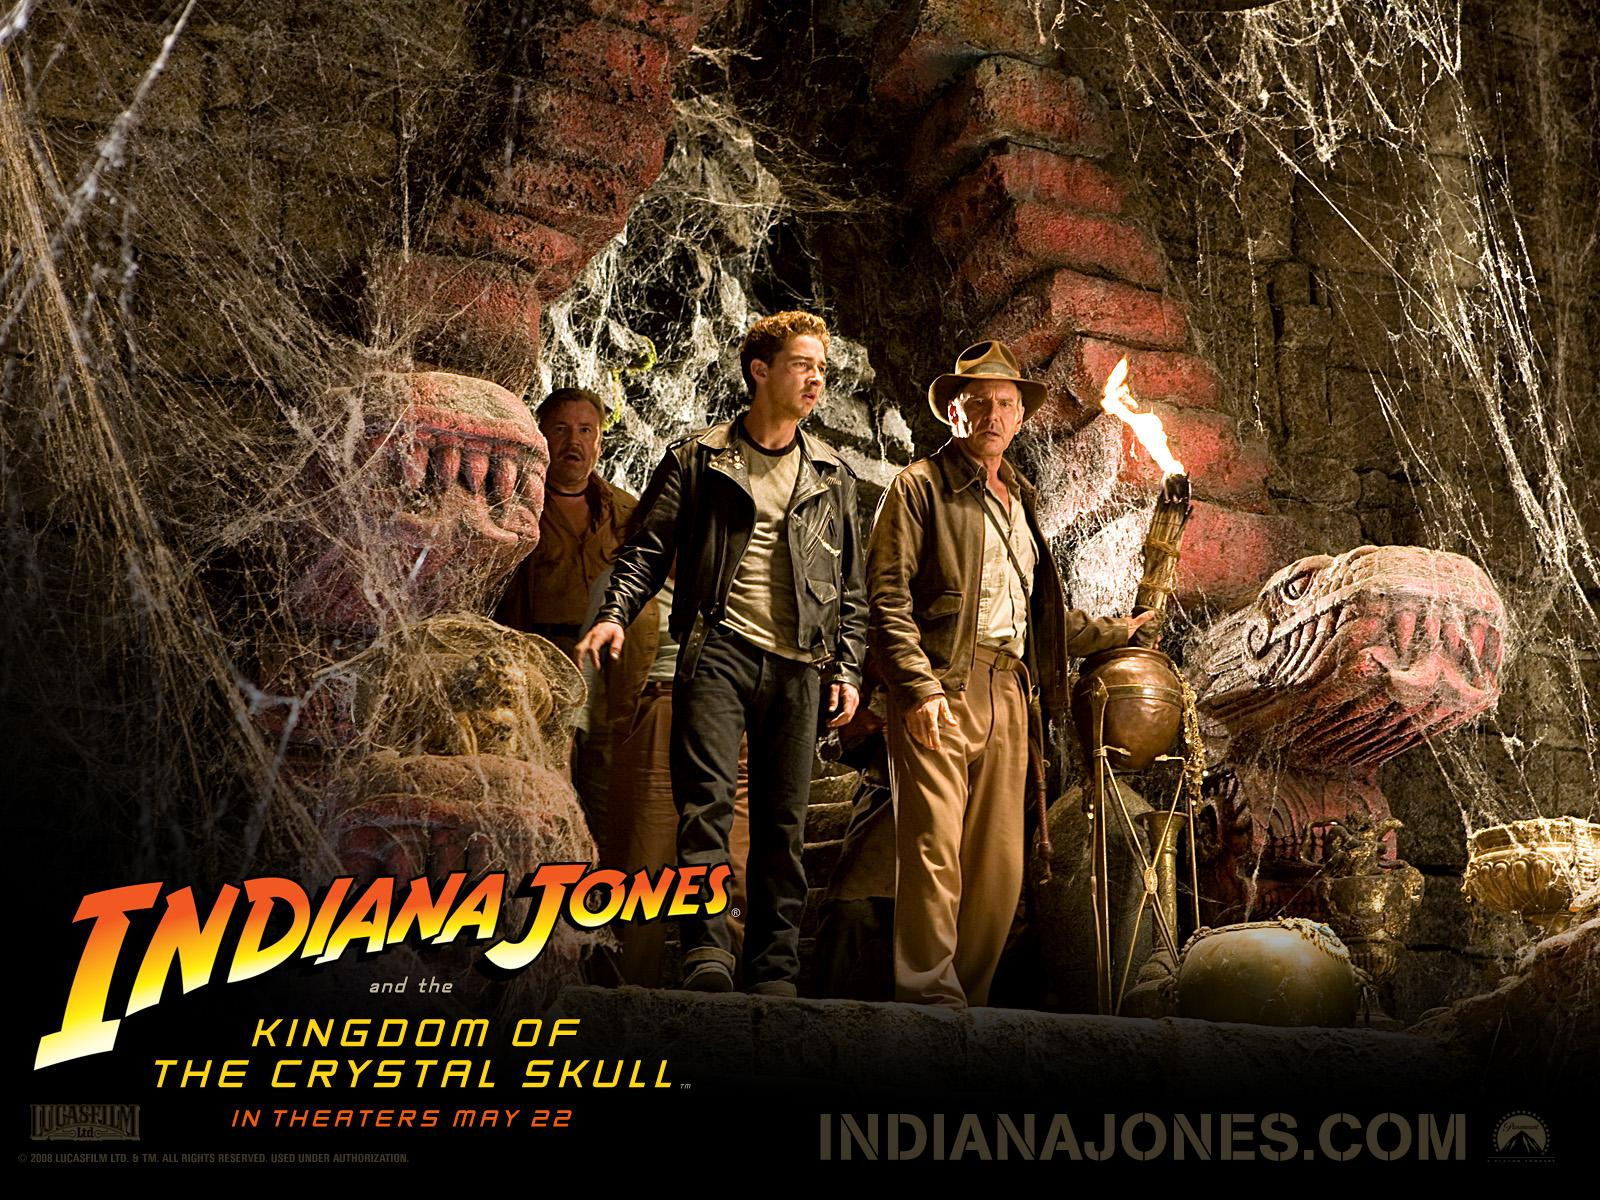 Pictures Indiana Jones Indiana Jones and the Kingdom of the Crystal Skull film Movies